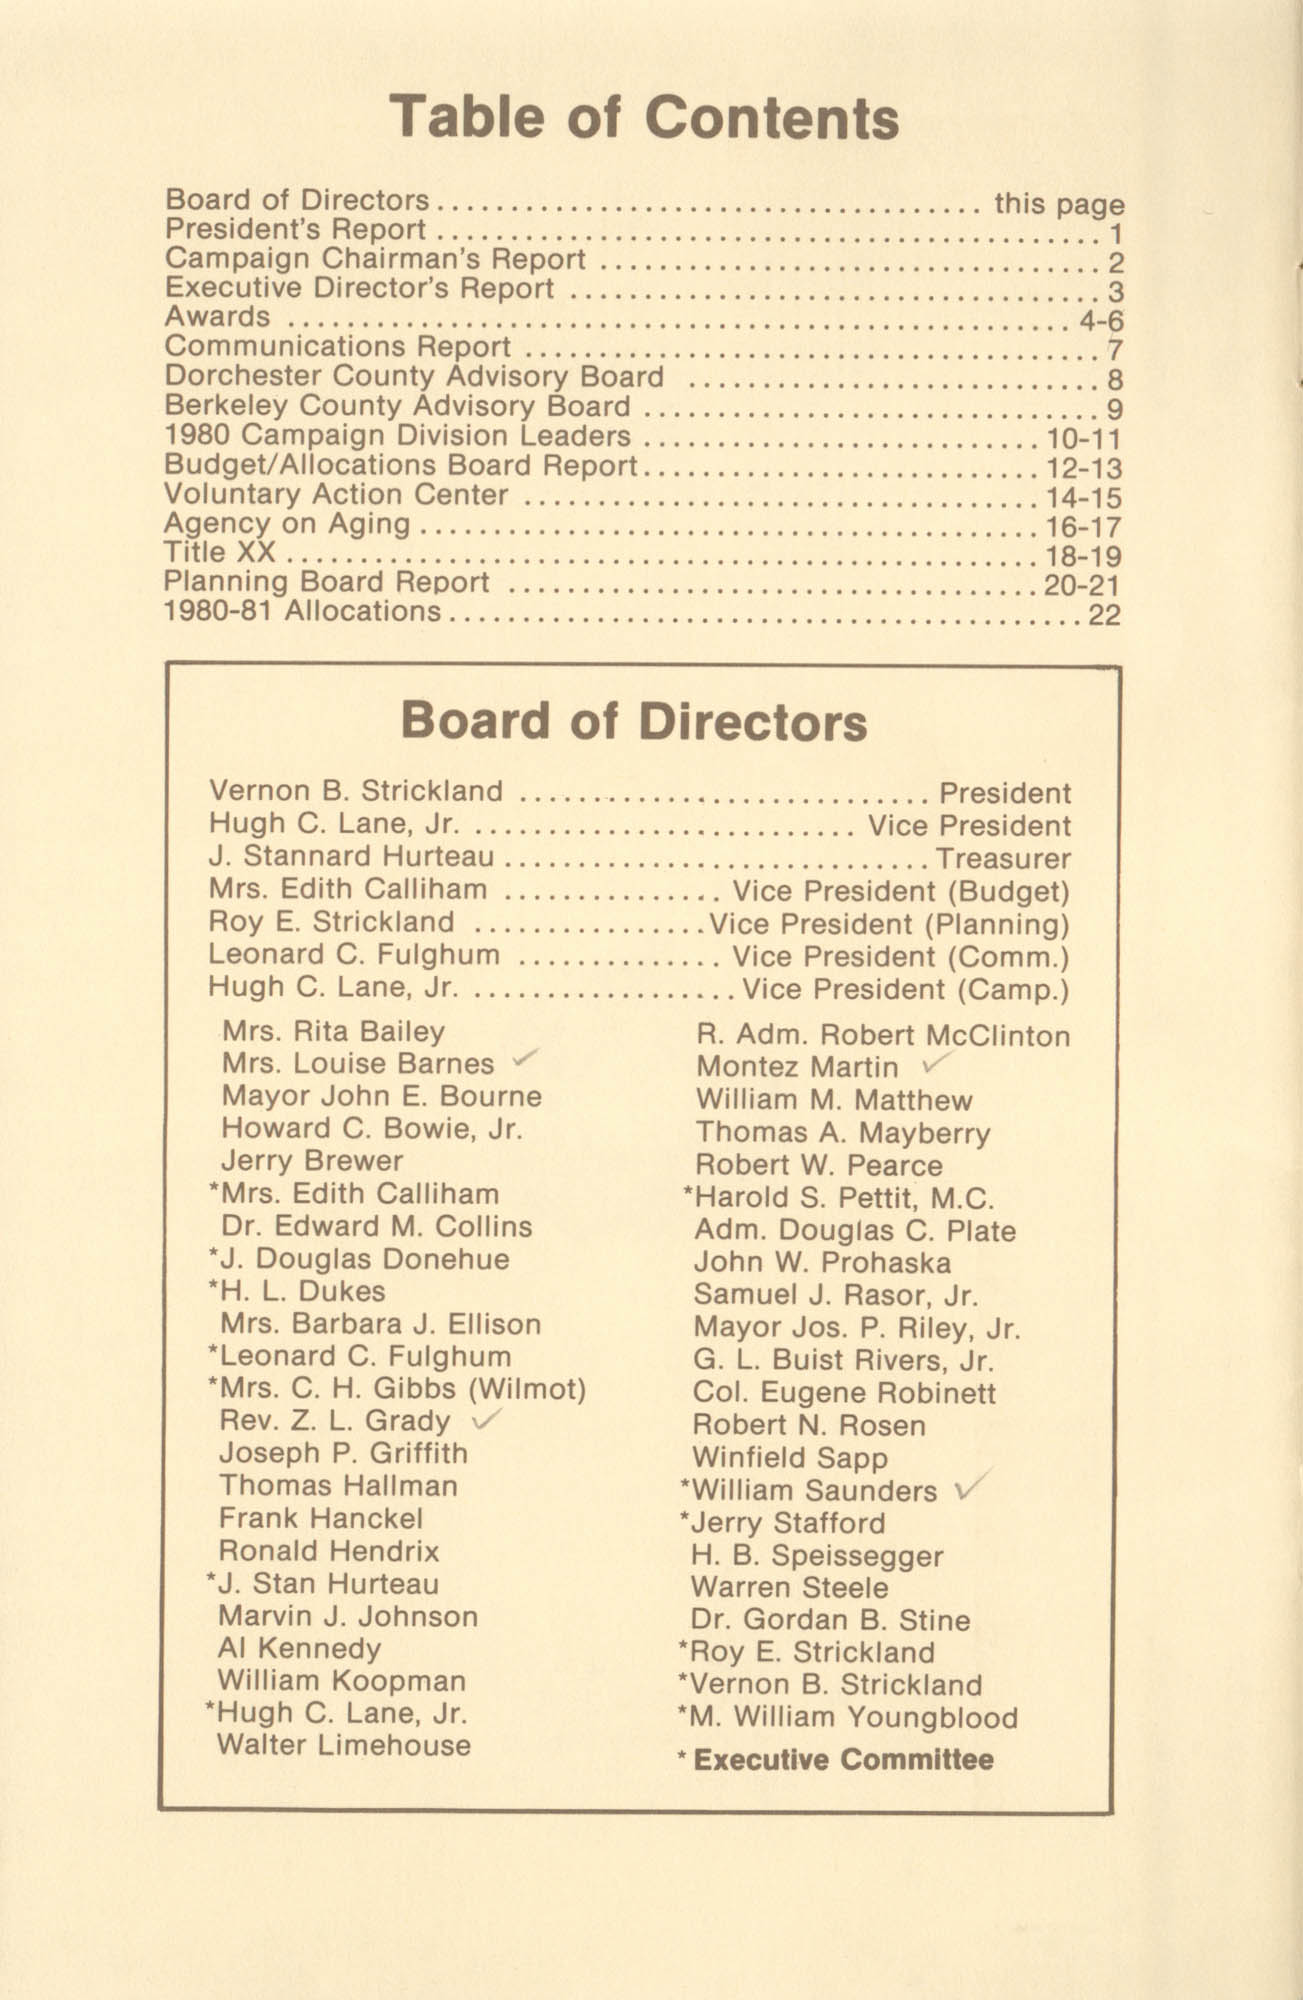 Trident United Way Annual Report, 1980, Table of Contents